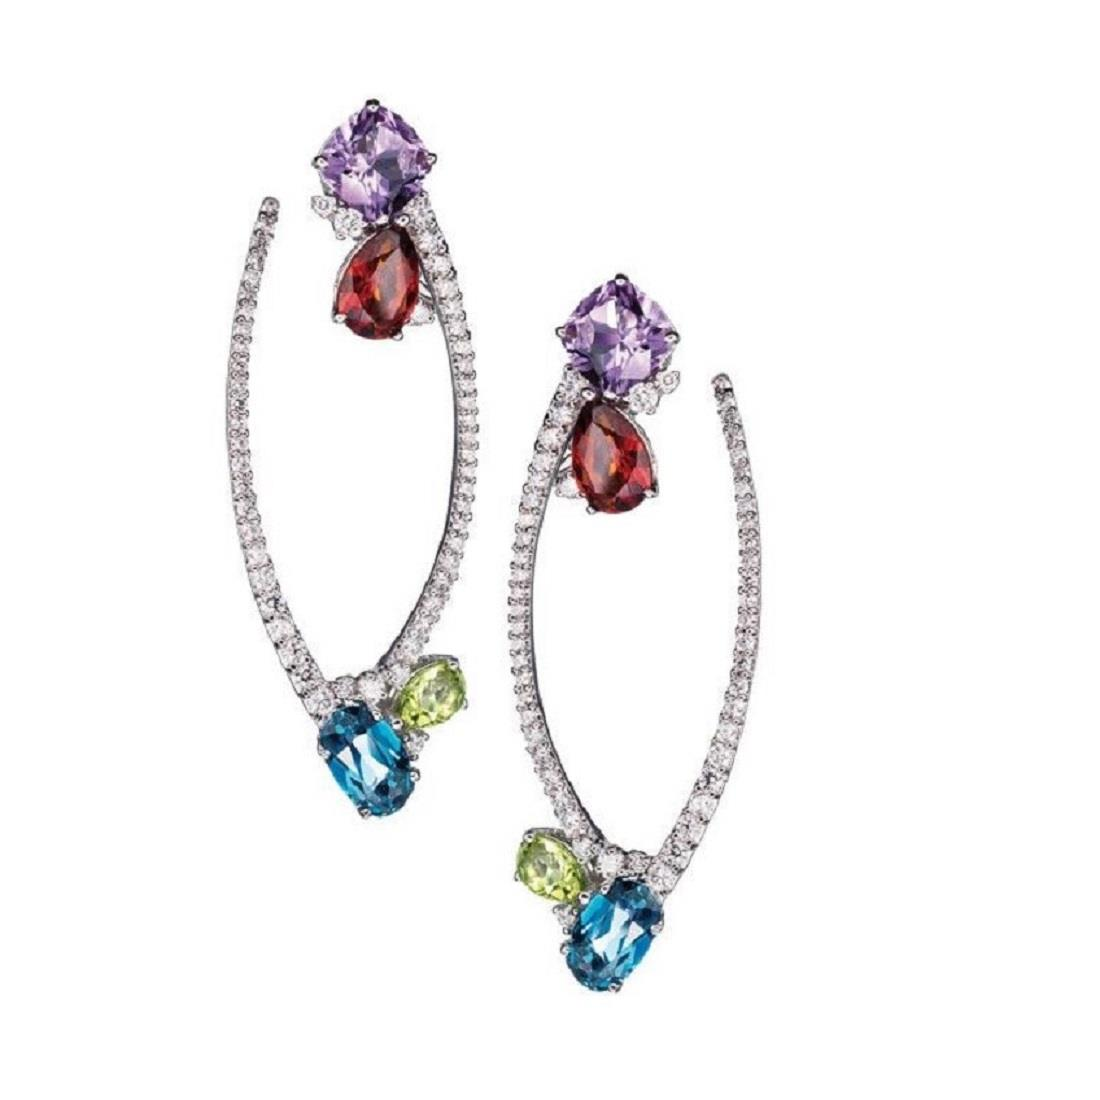 18 kt white gold long earrings with antique cut amethyst, dropcut madera quartz, drop-cut peridot and oval-cut london topaz with 2,51 ct diamonds